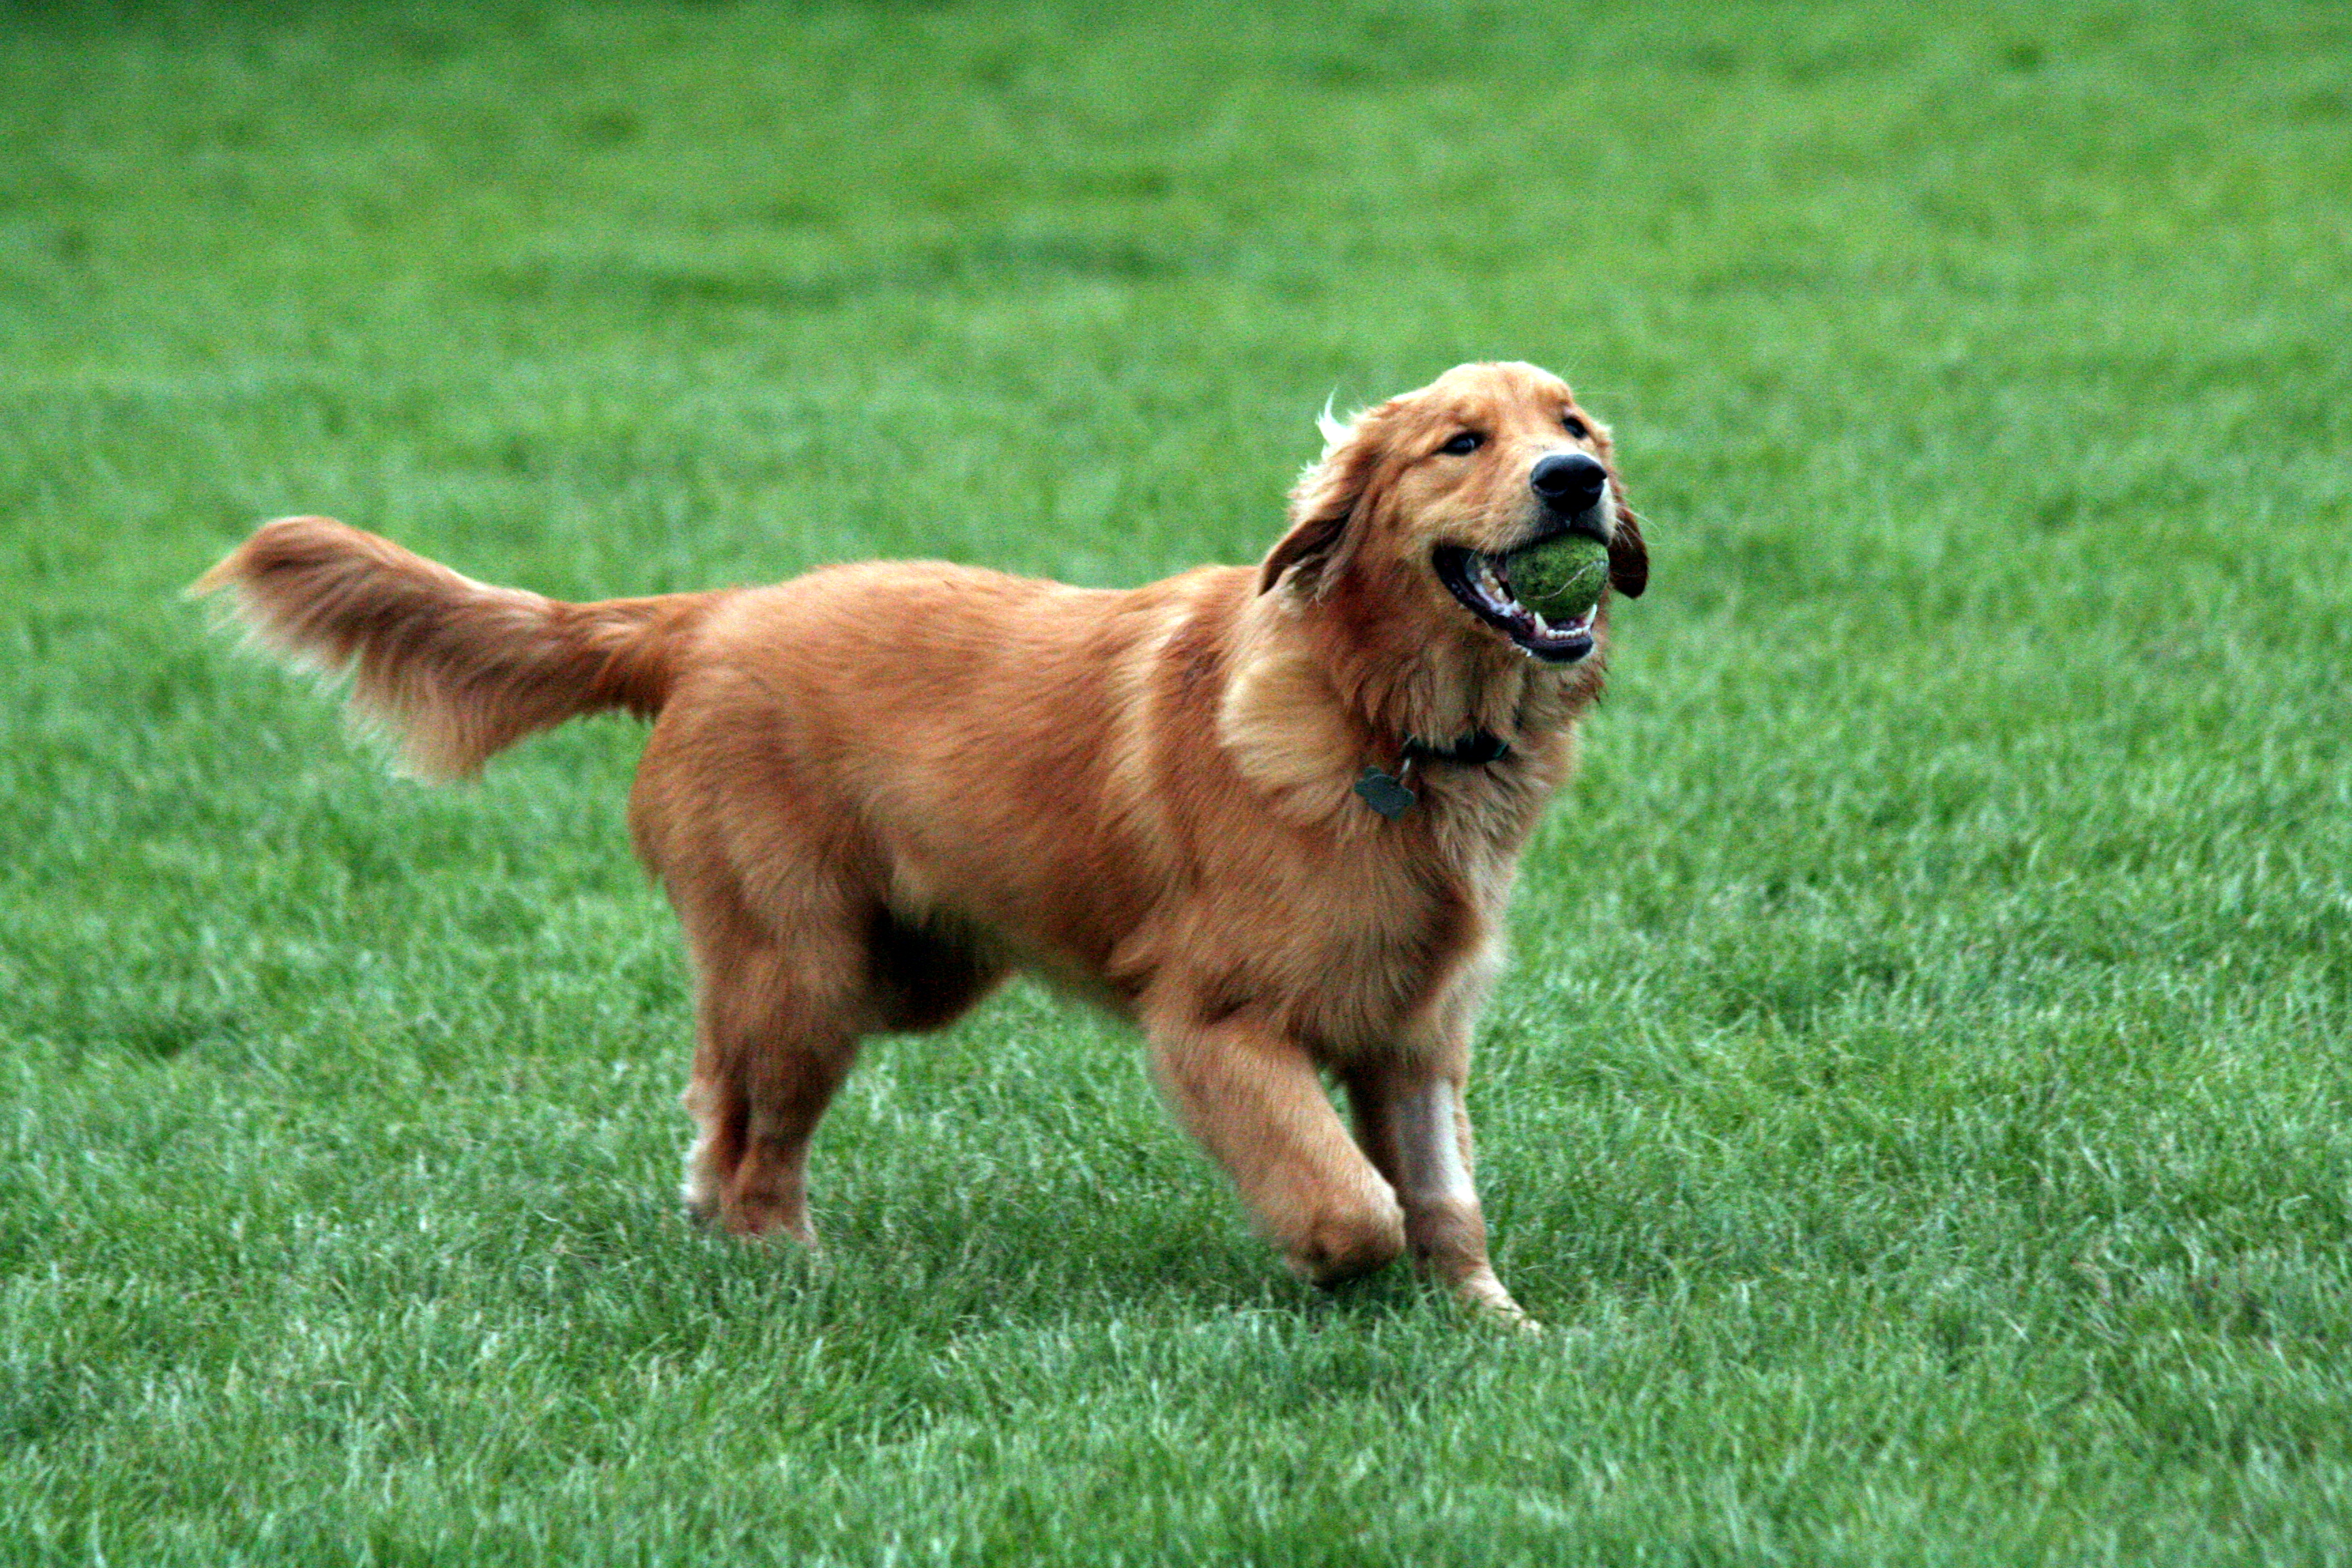 Depiction of Golden retriever